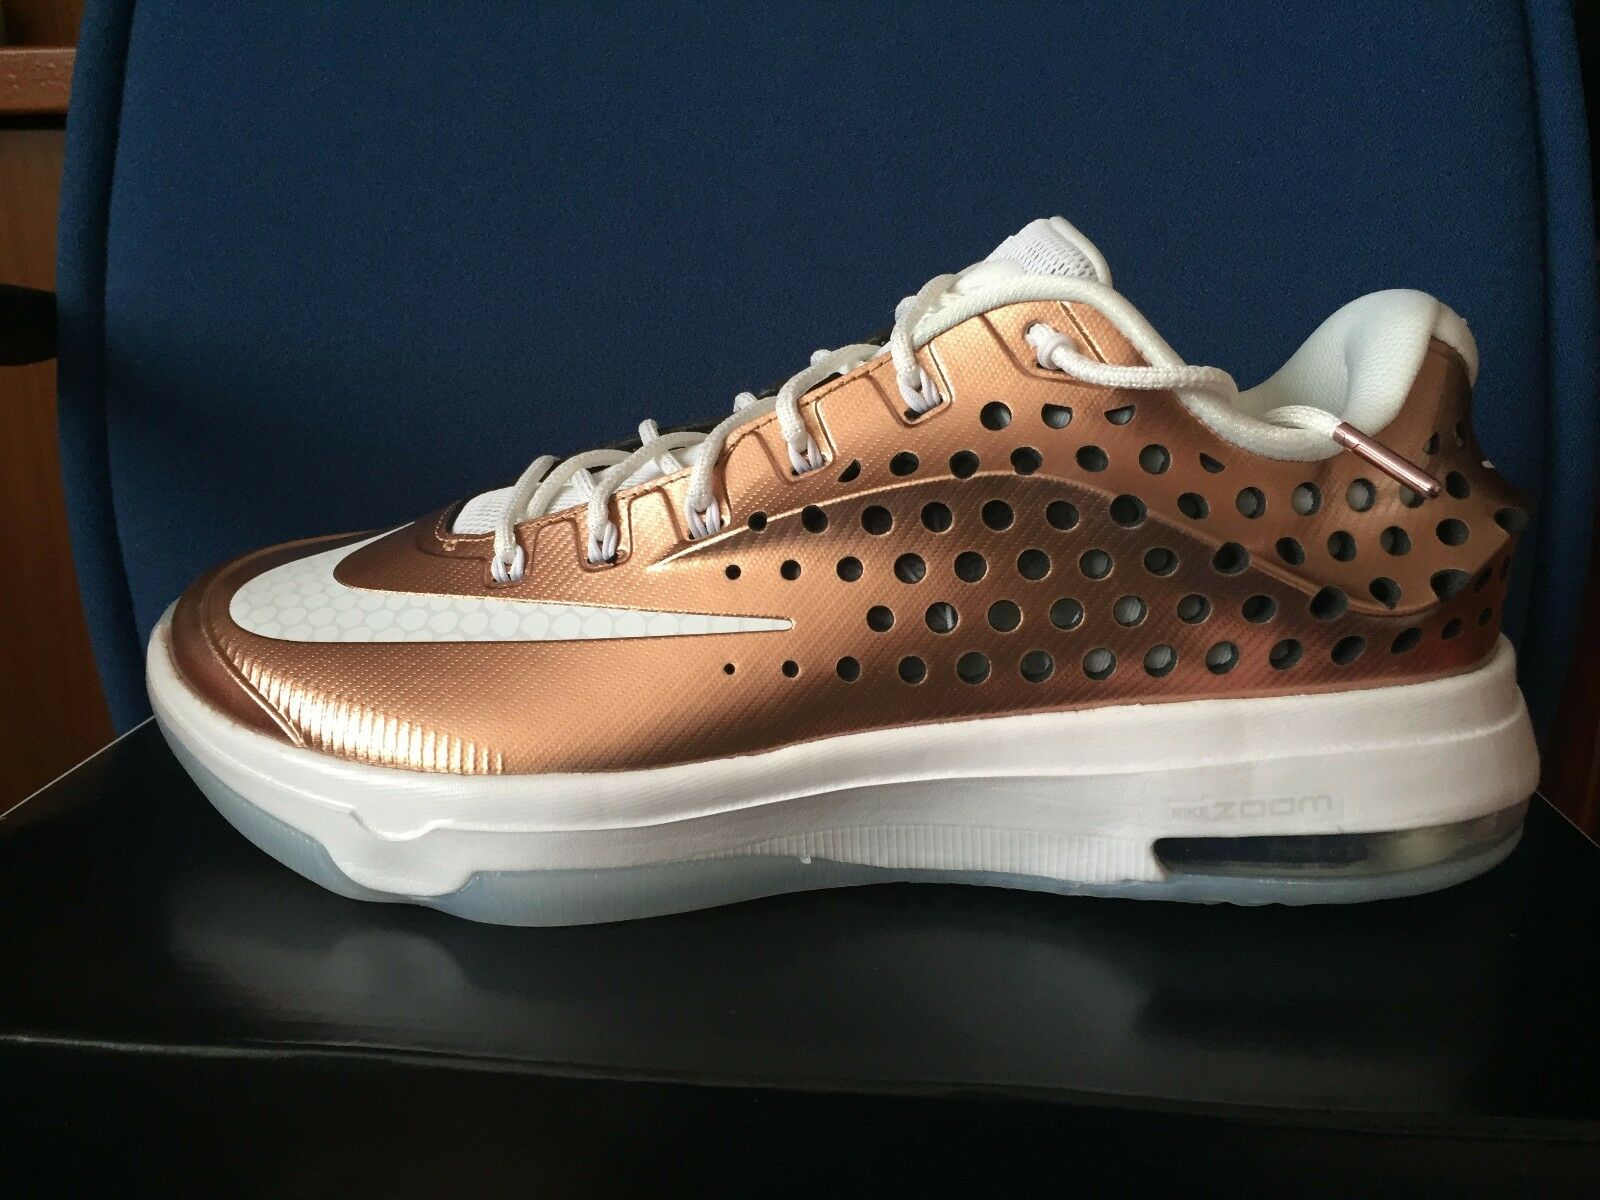 Nike KD 7 Elite EYBL Copper Sz 8.5 Kevin Durant VII GOLD foamposite 800514 914 The latest discount shoes for men and women